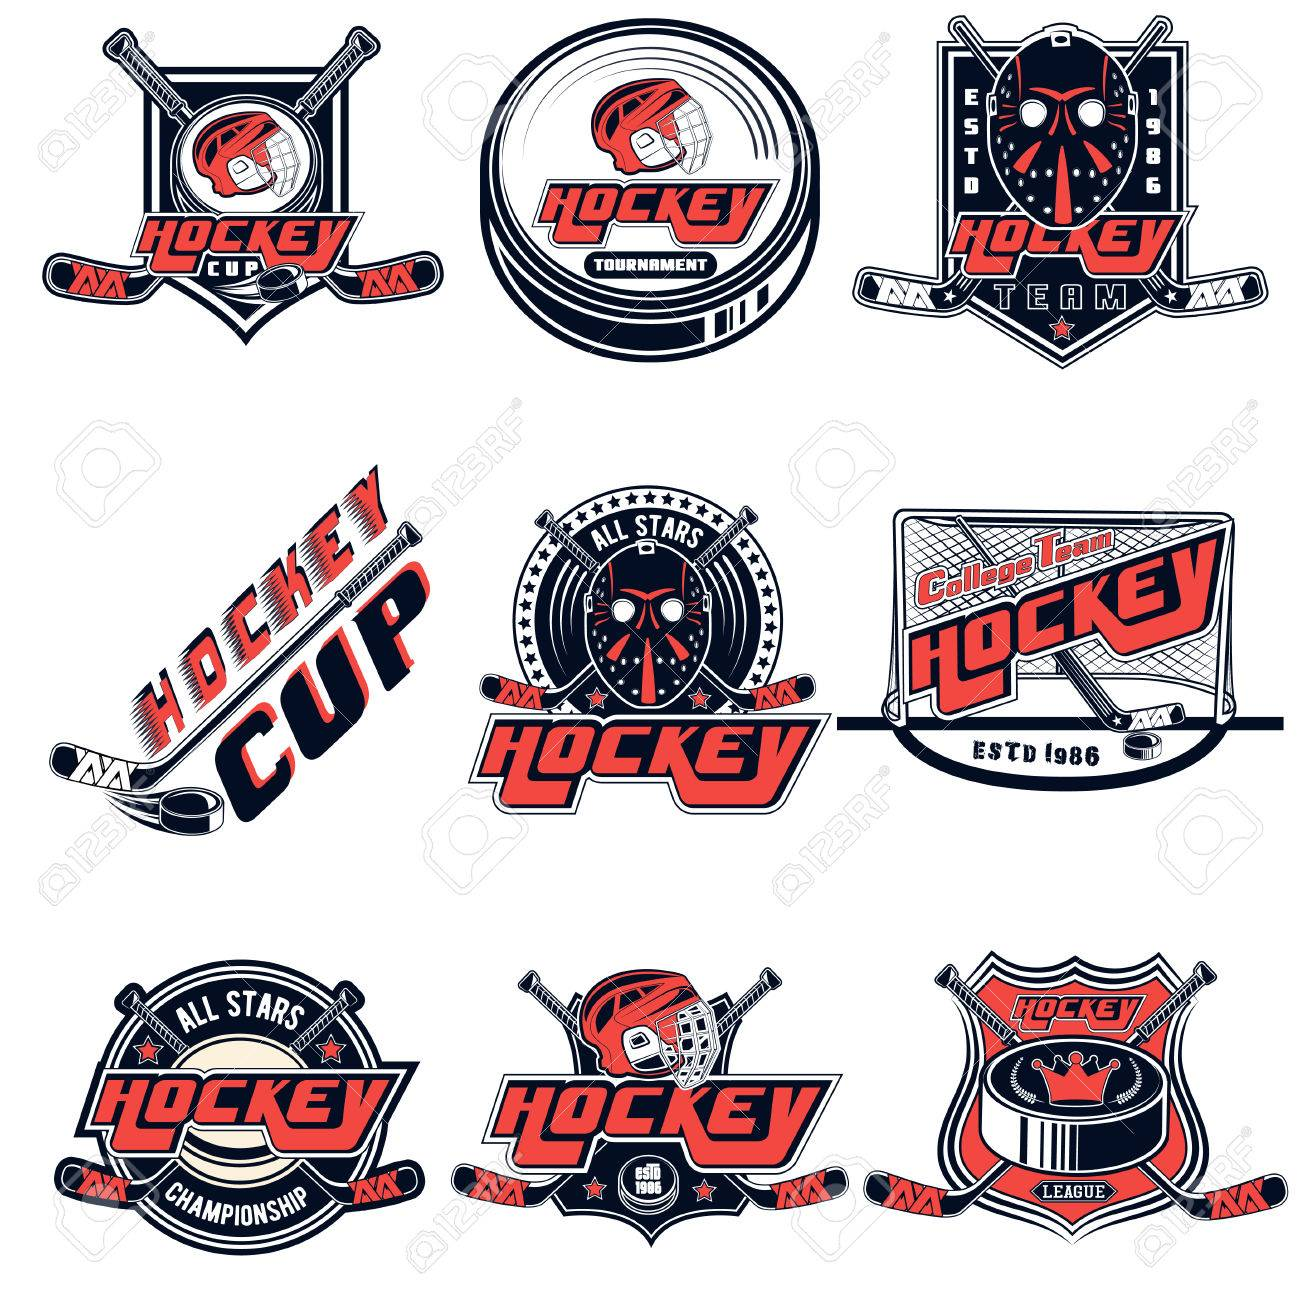 Hockey Logos Vector Set Hockey Logos For Sports Team Design Web Print On